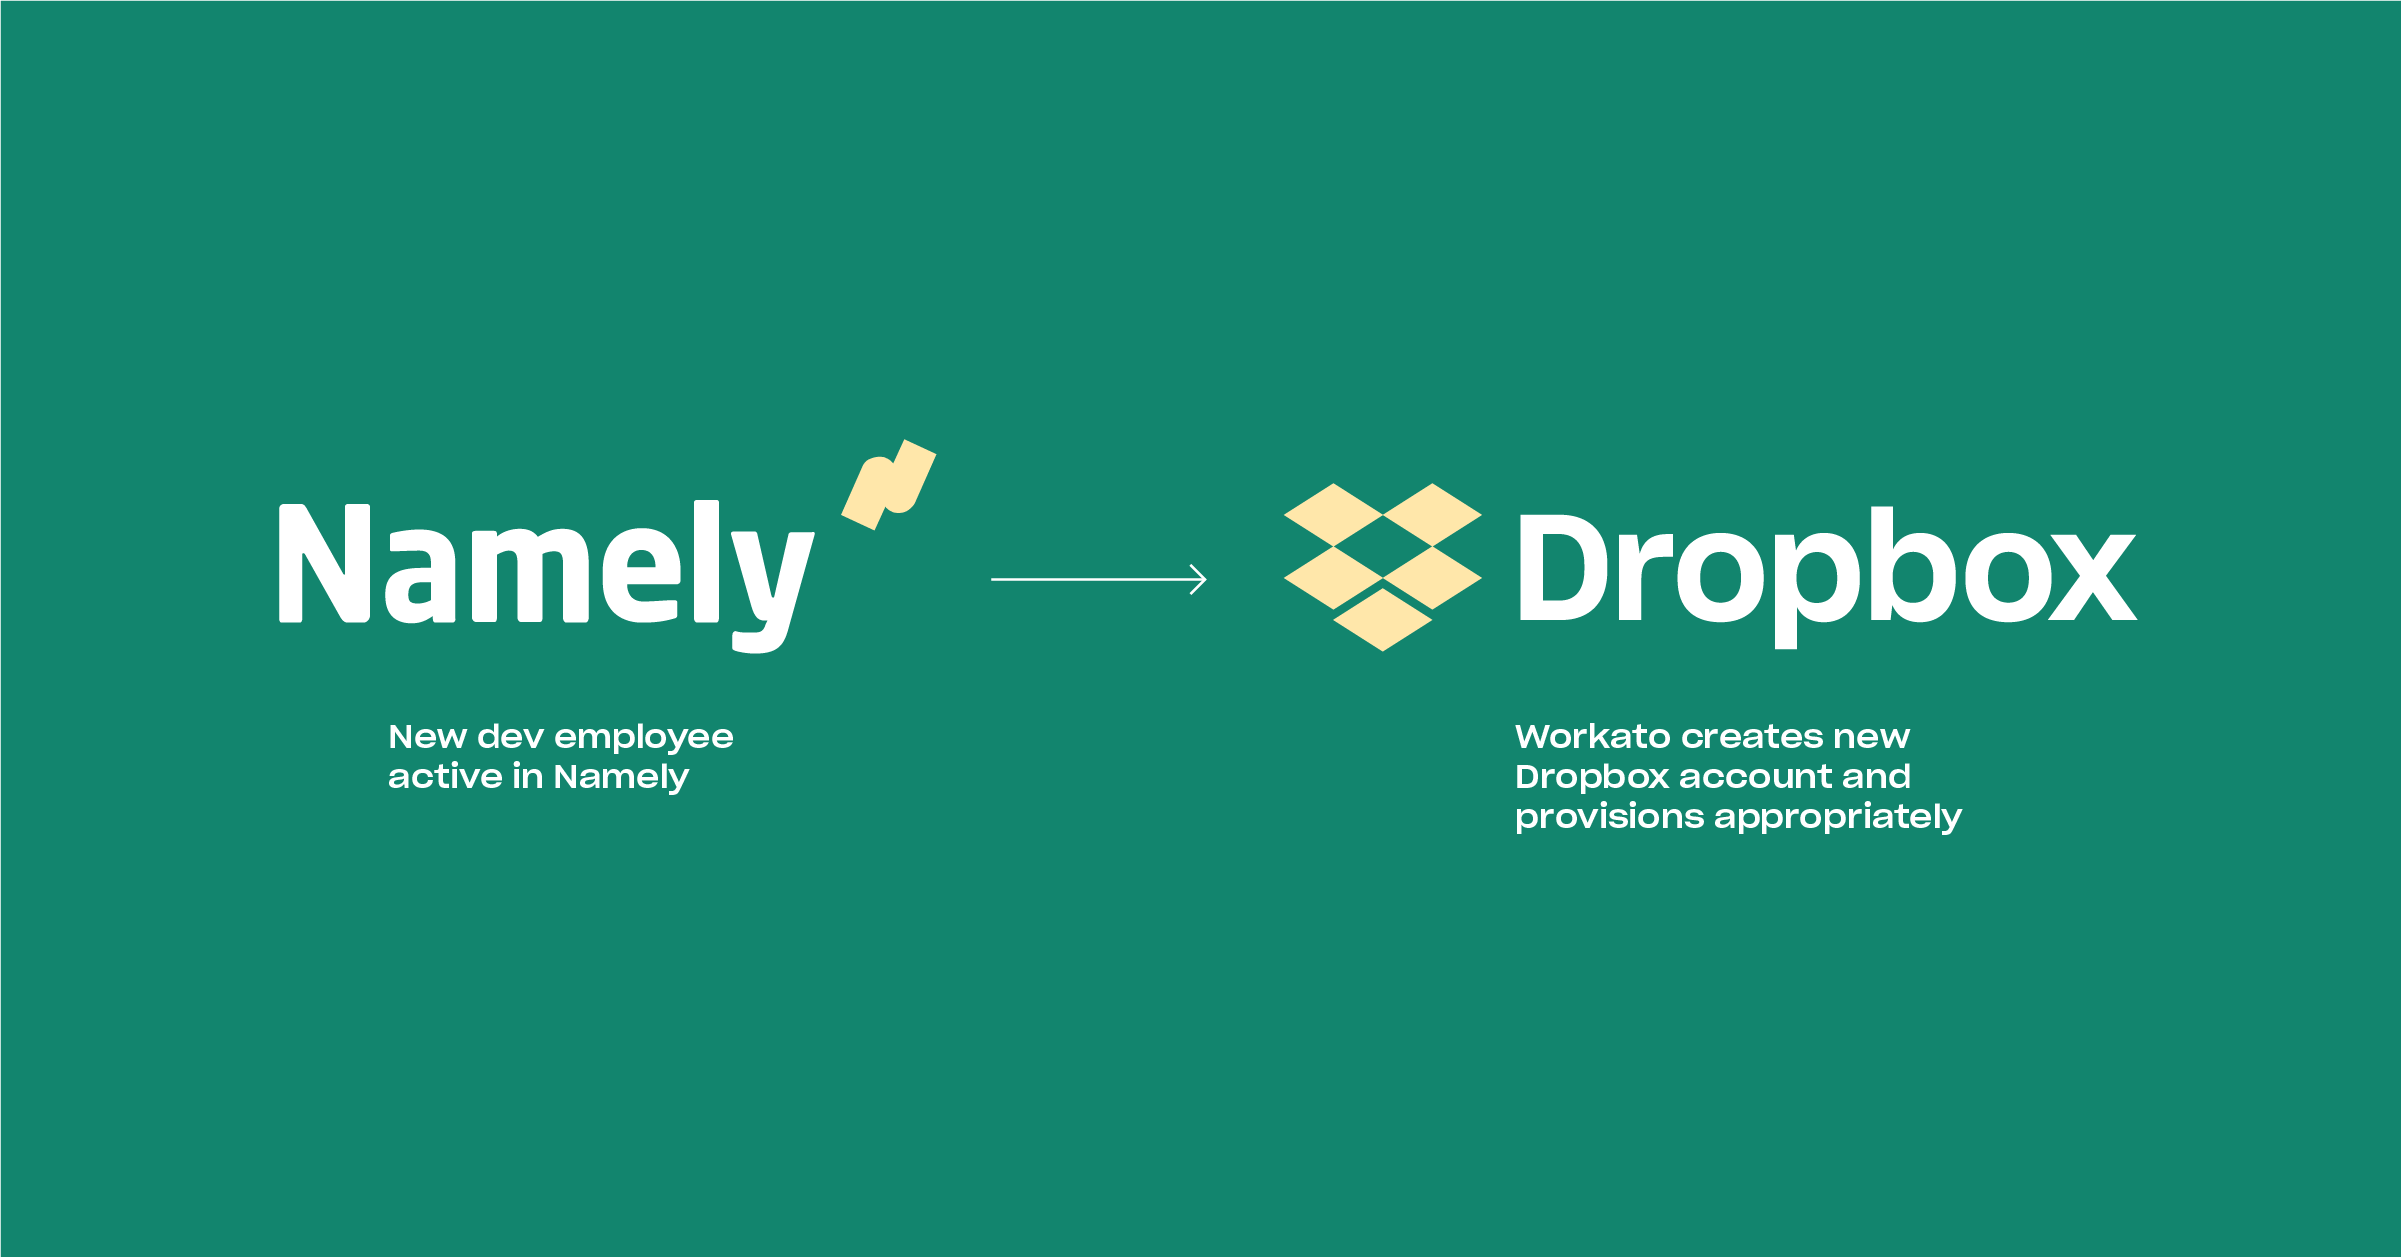 Diagram of a Namely to Dropbox workflow